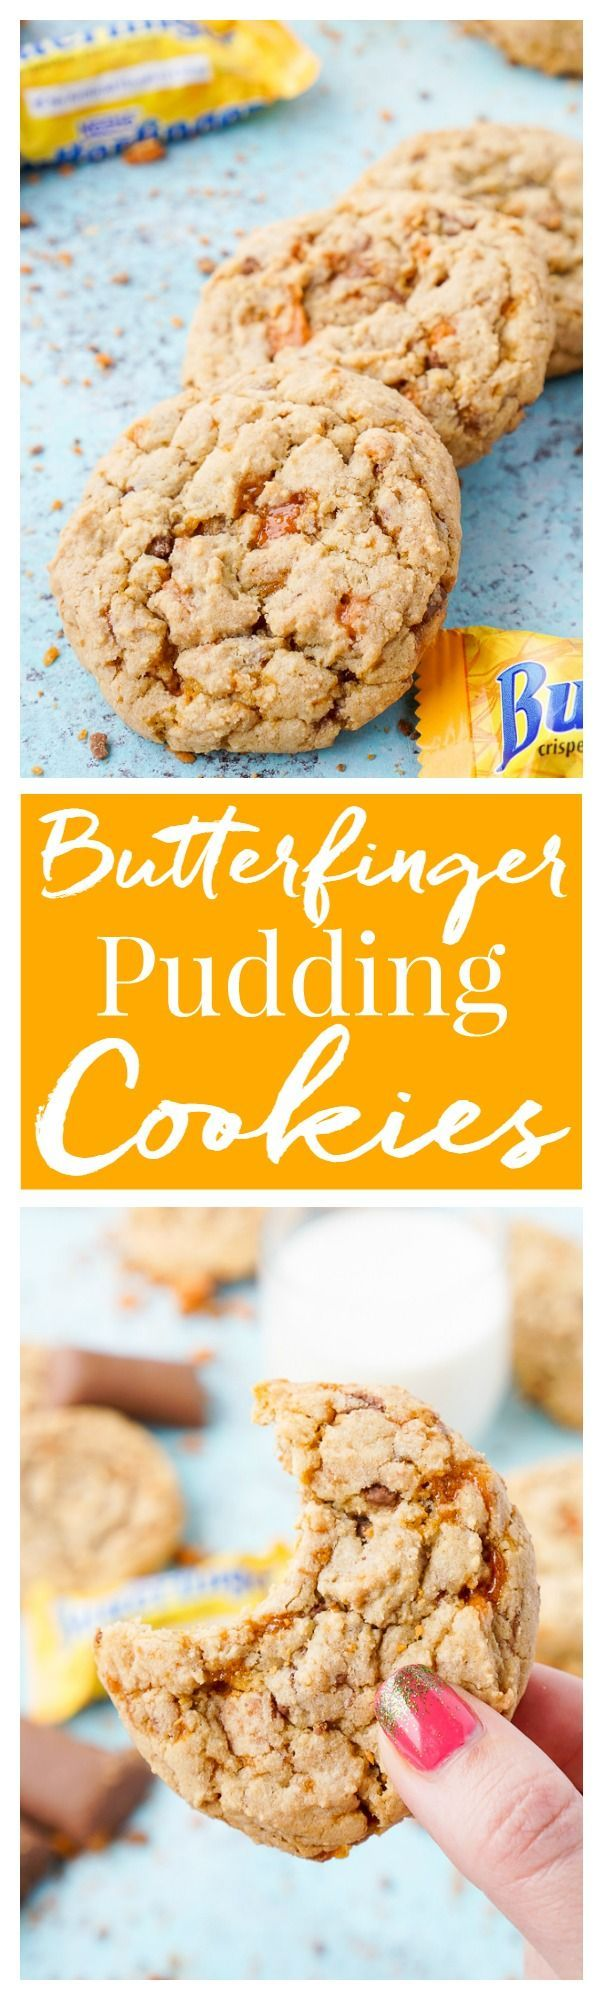 Candy bar cookies recipes